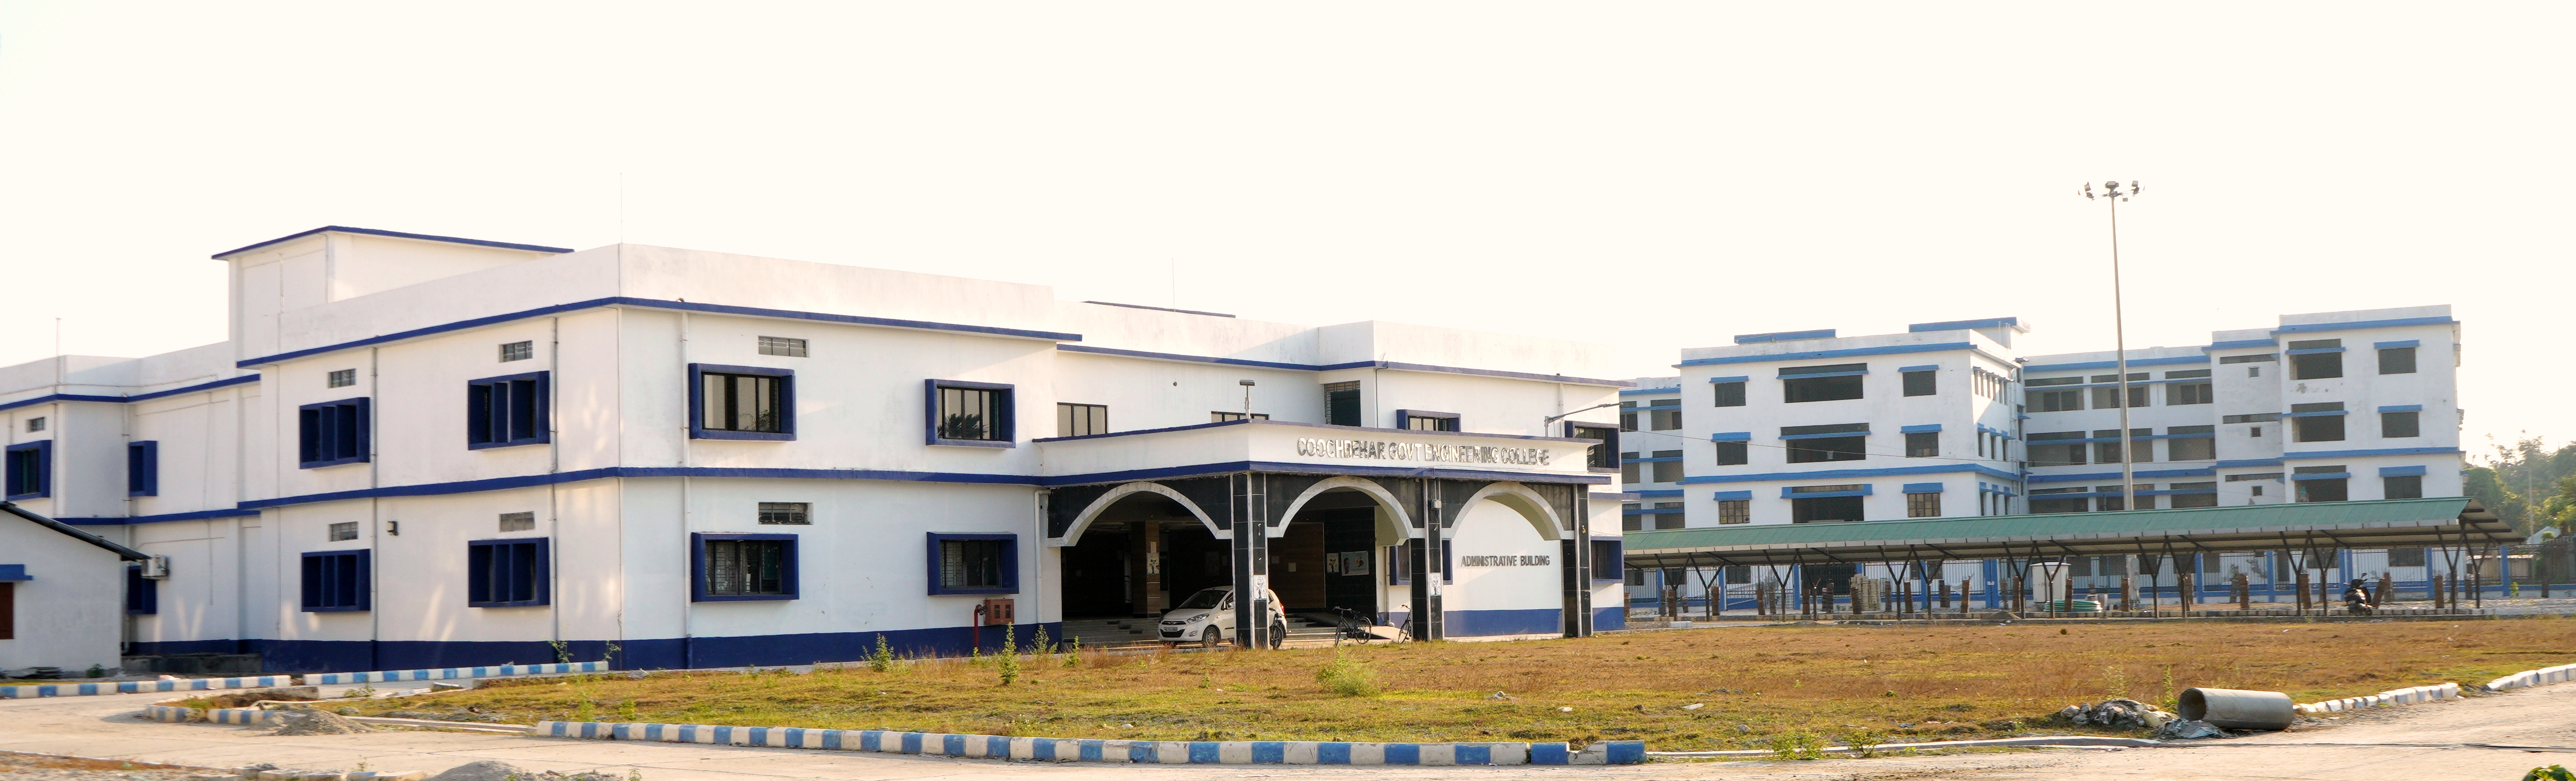 Goverment Engineering College at Coochbehar